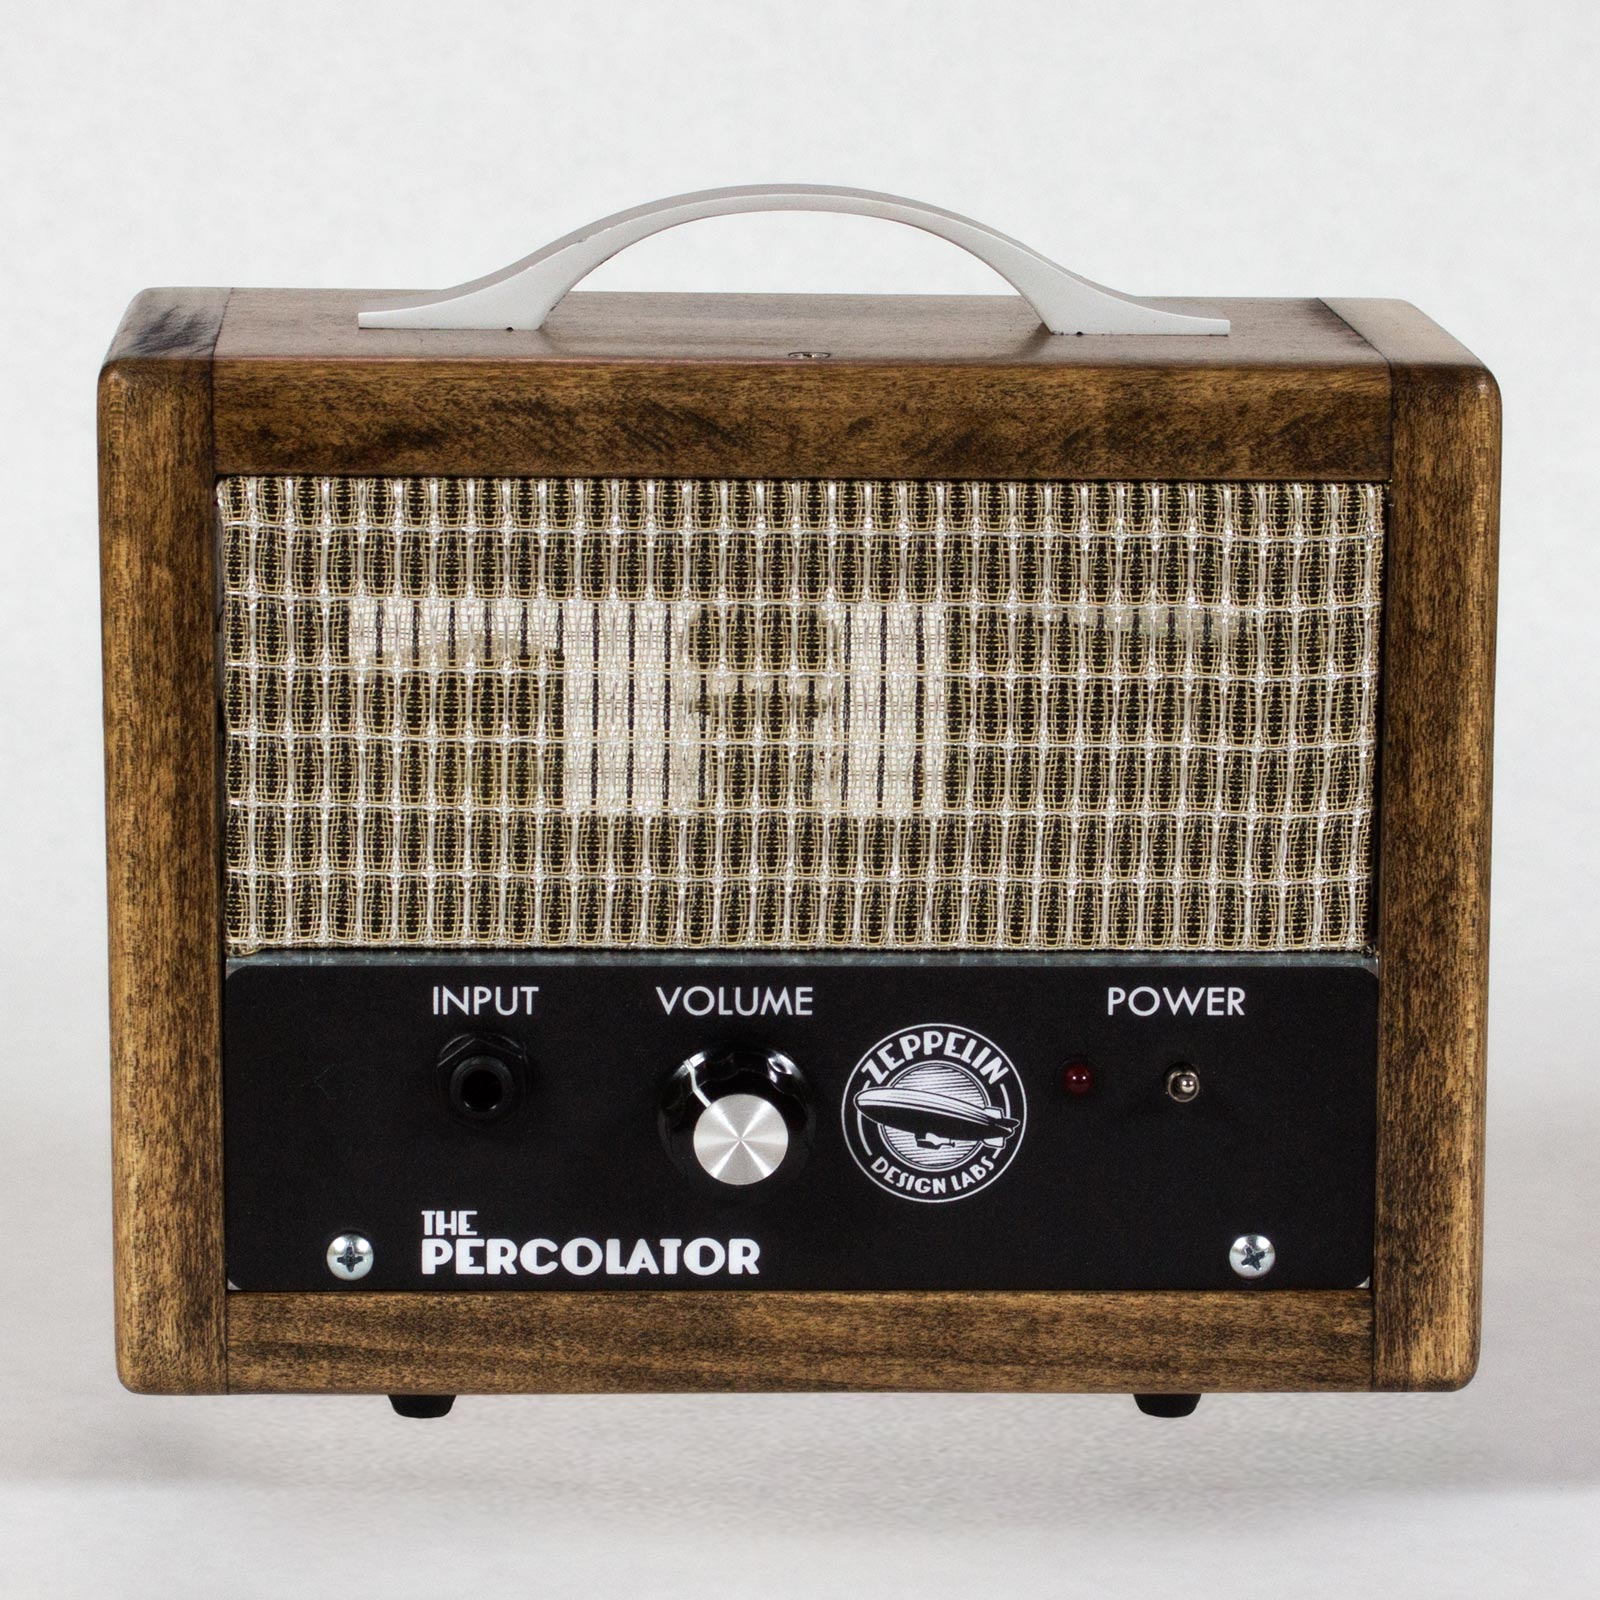 Percolator 2w tube guitar amp valve amp zeppelin design labs percolator 2w tube guitar amp valve amp solutioingenieria Image collections